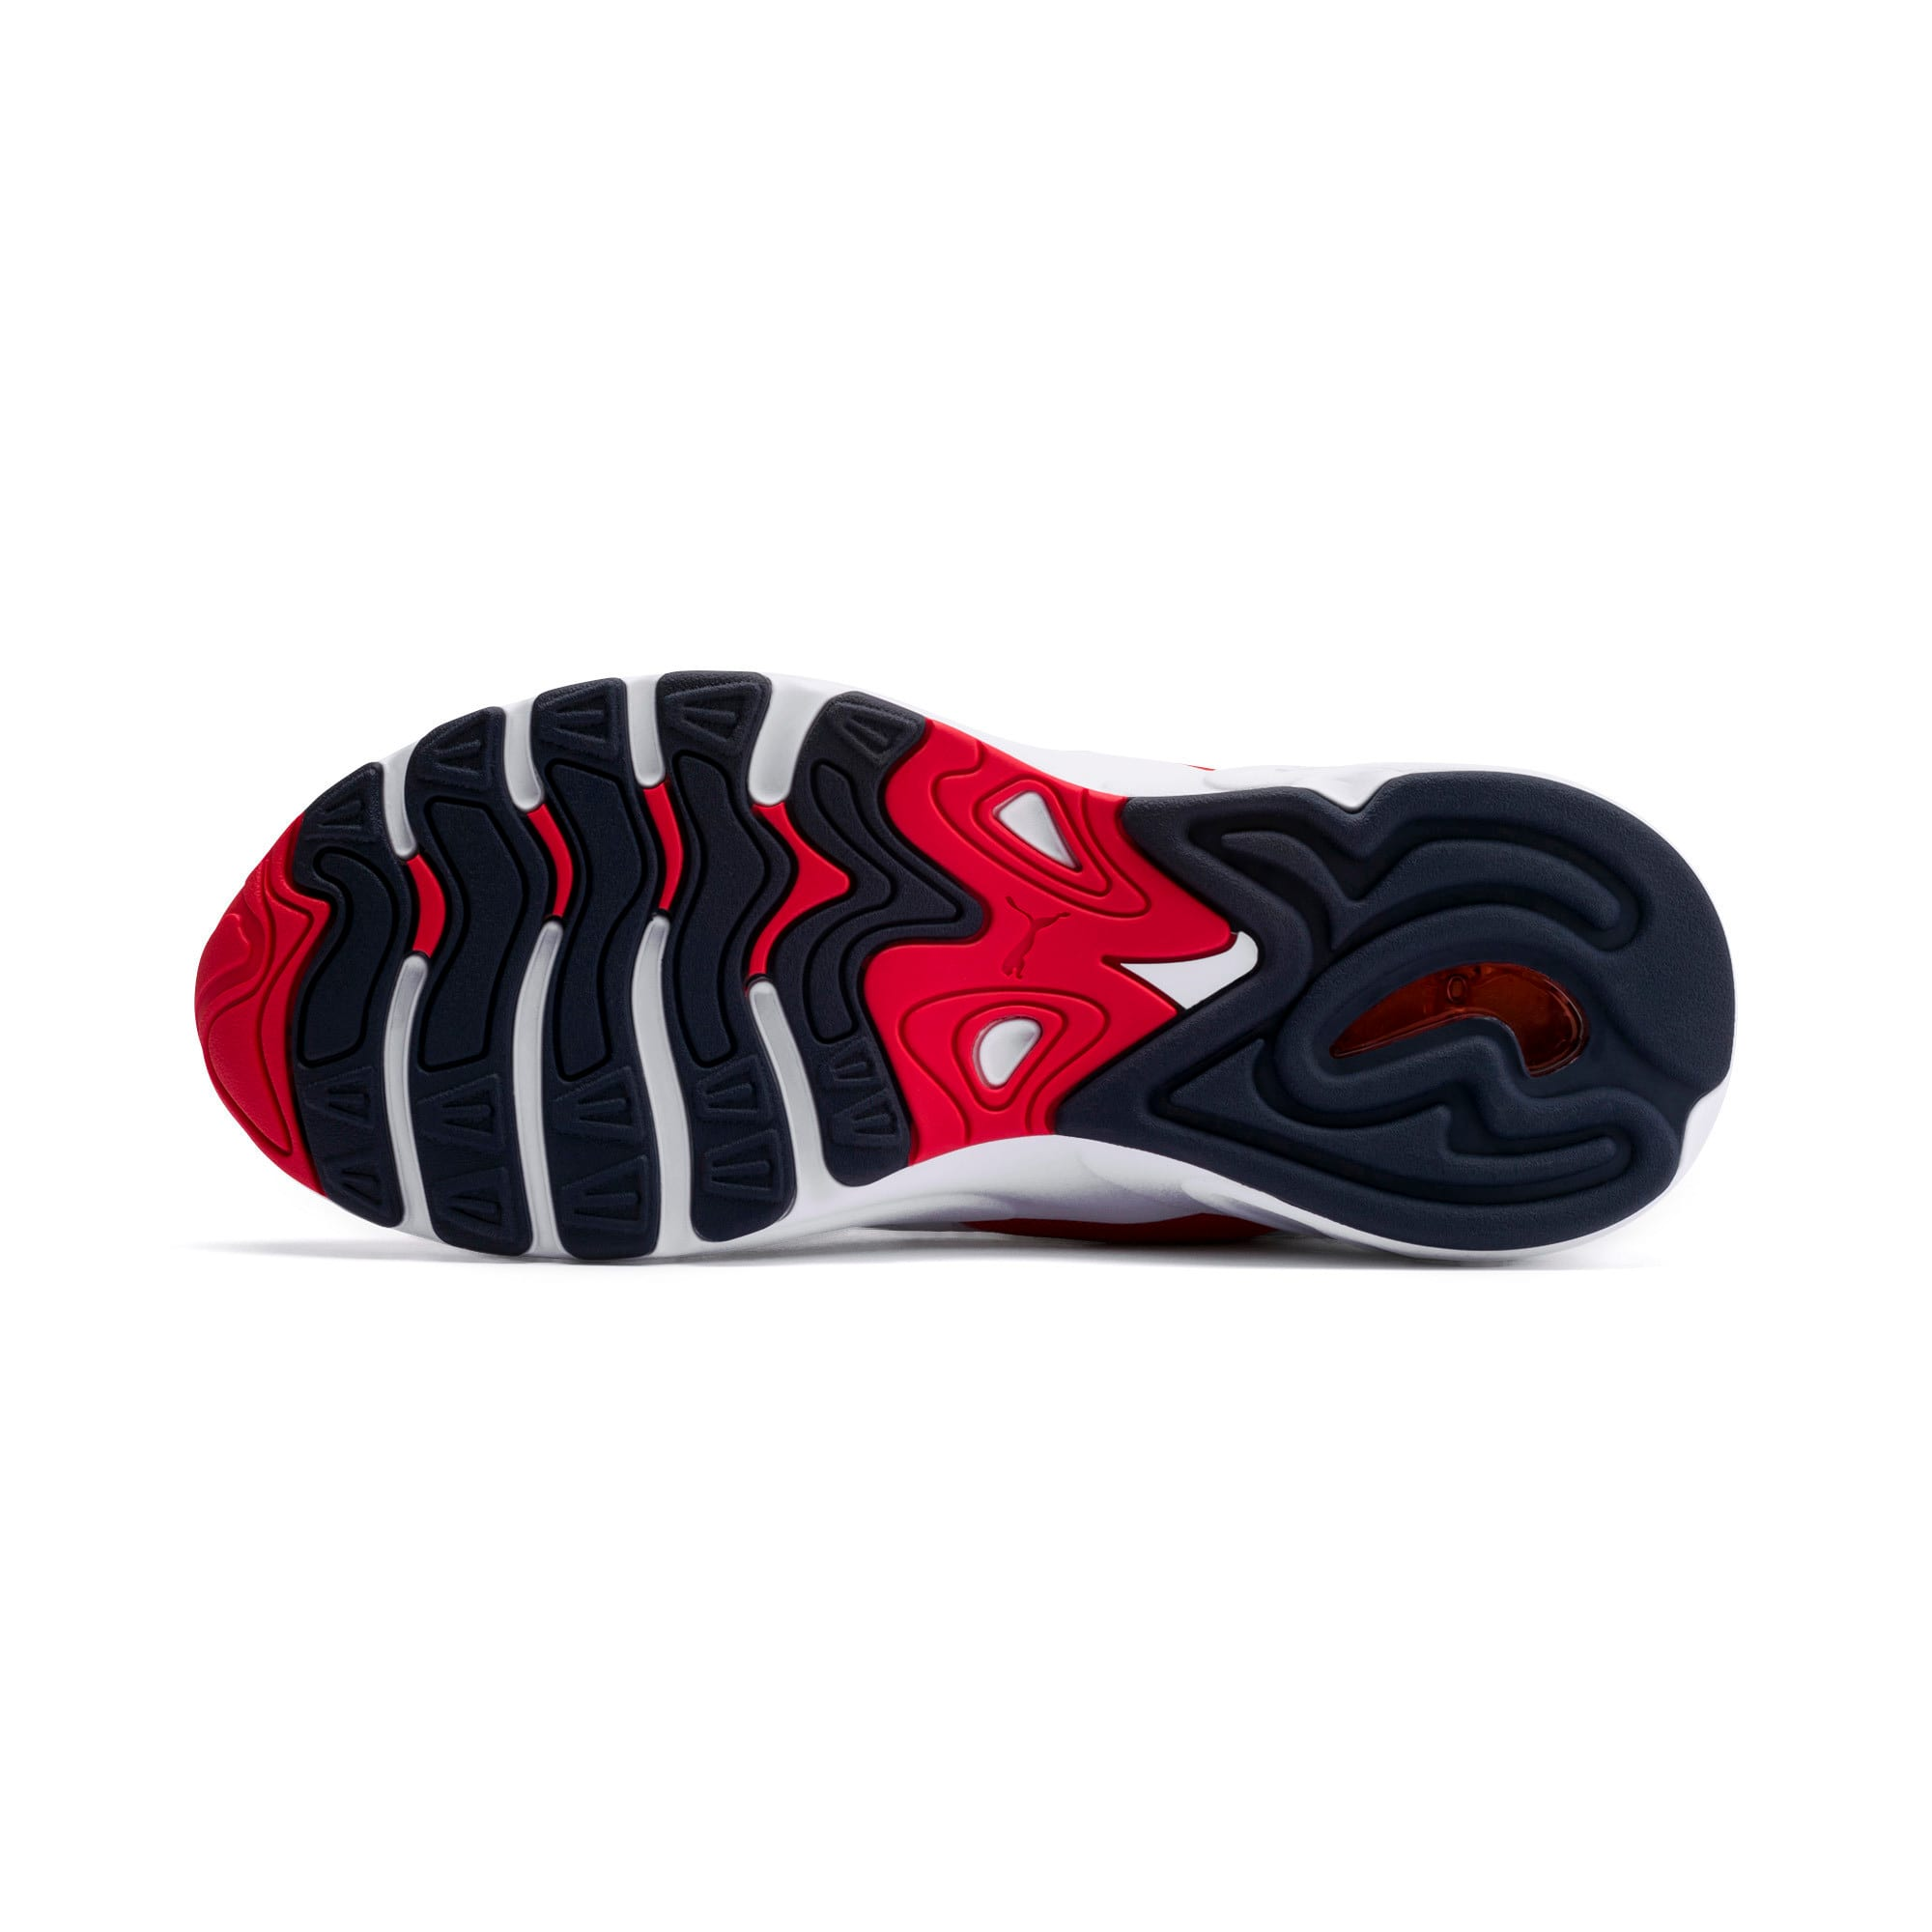 Thumbnail 4 of CELL Viper Sneakers, Puma White-High Risk Red, medium